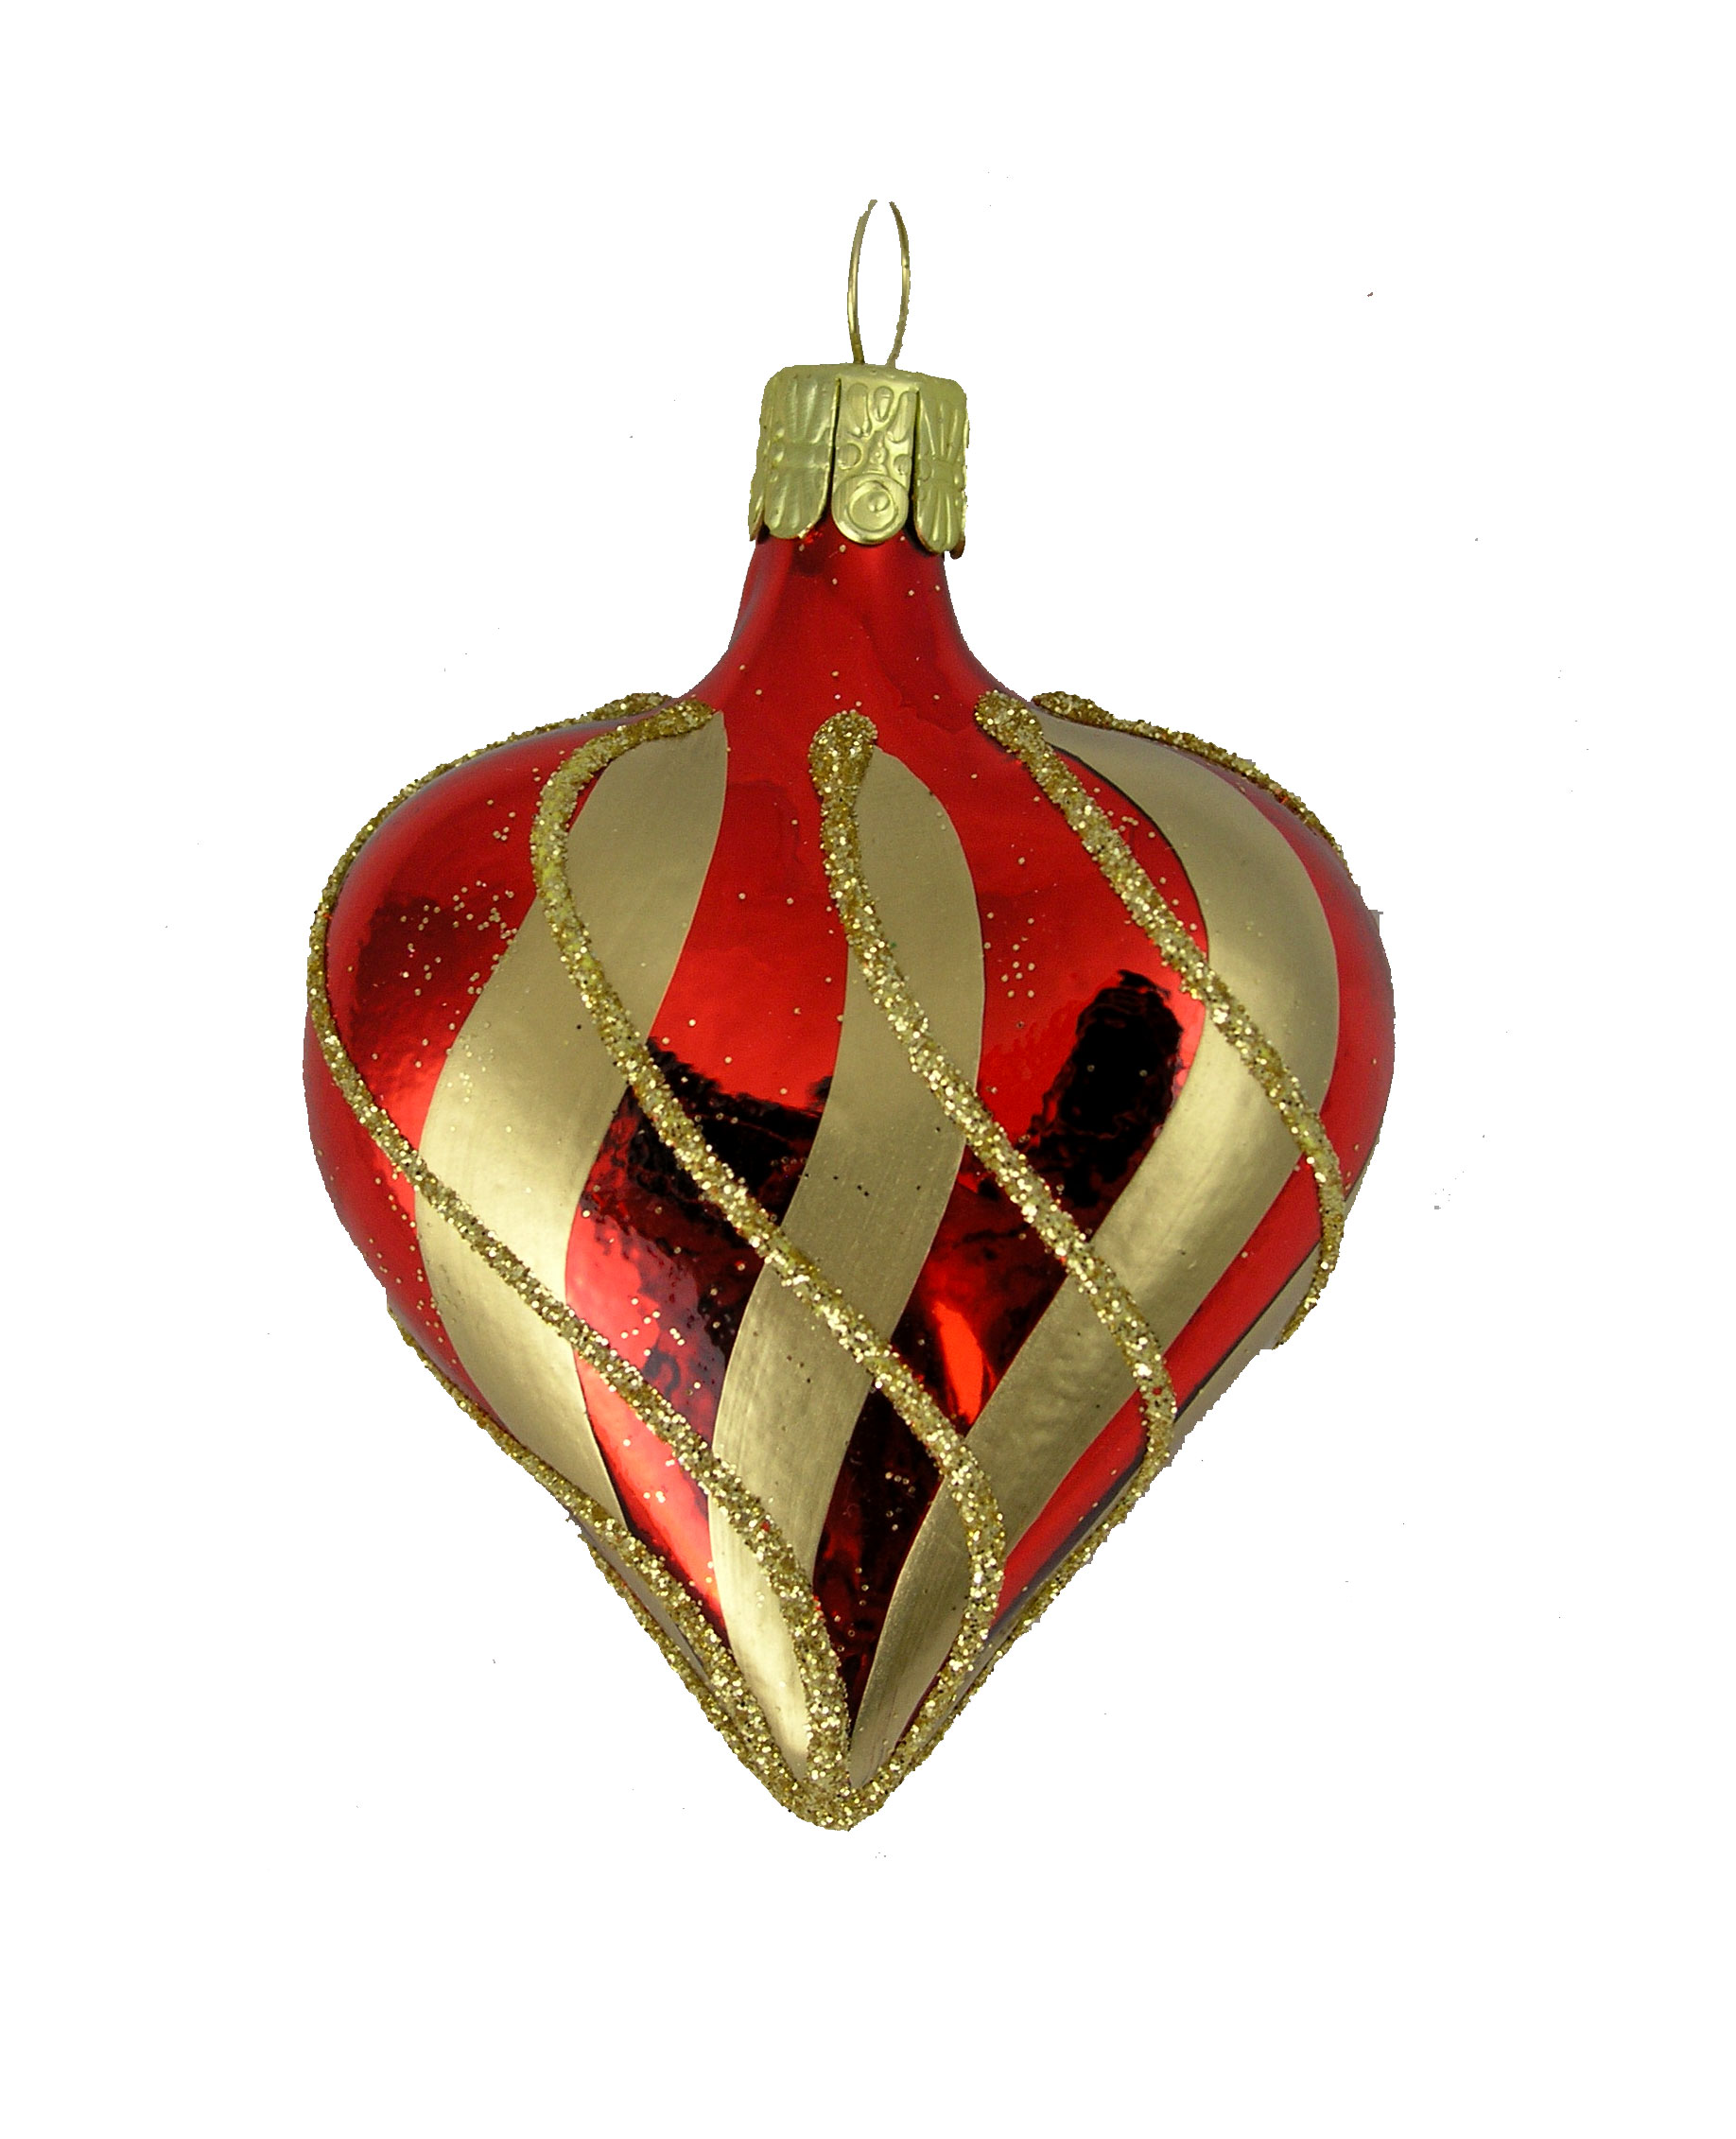 Shiny Red Heart With Gold Stripes And Glitter Blown Glass